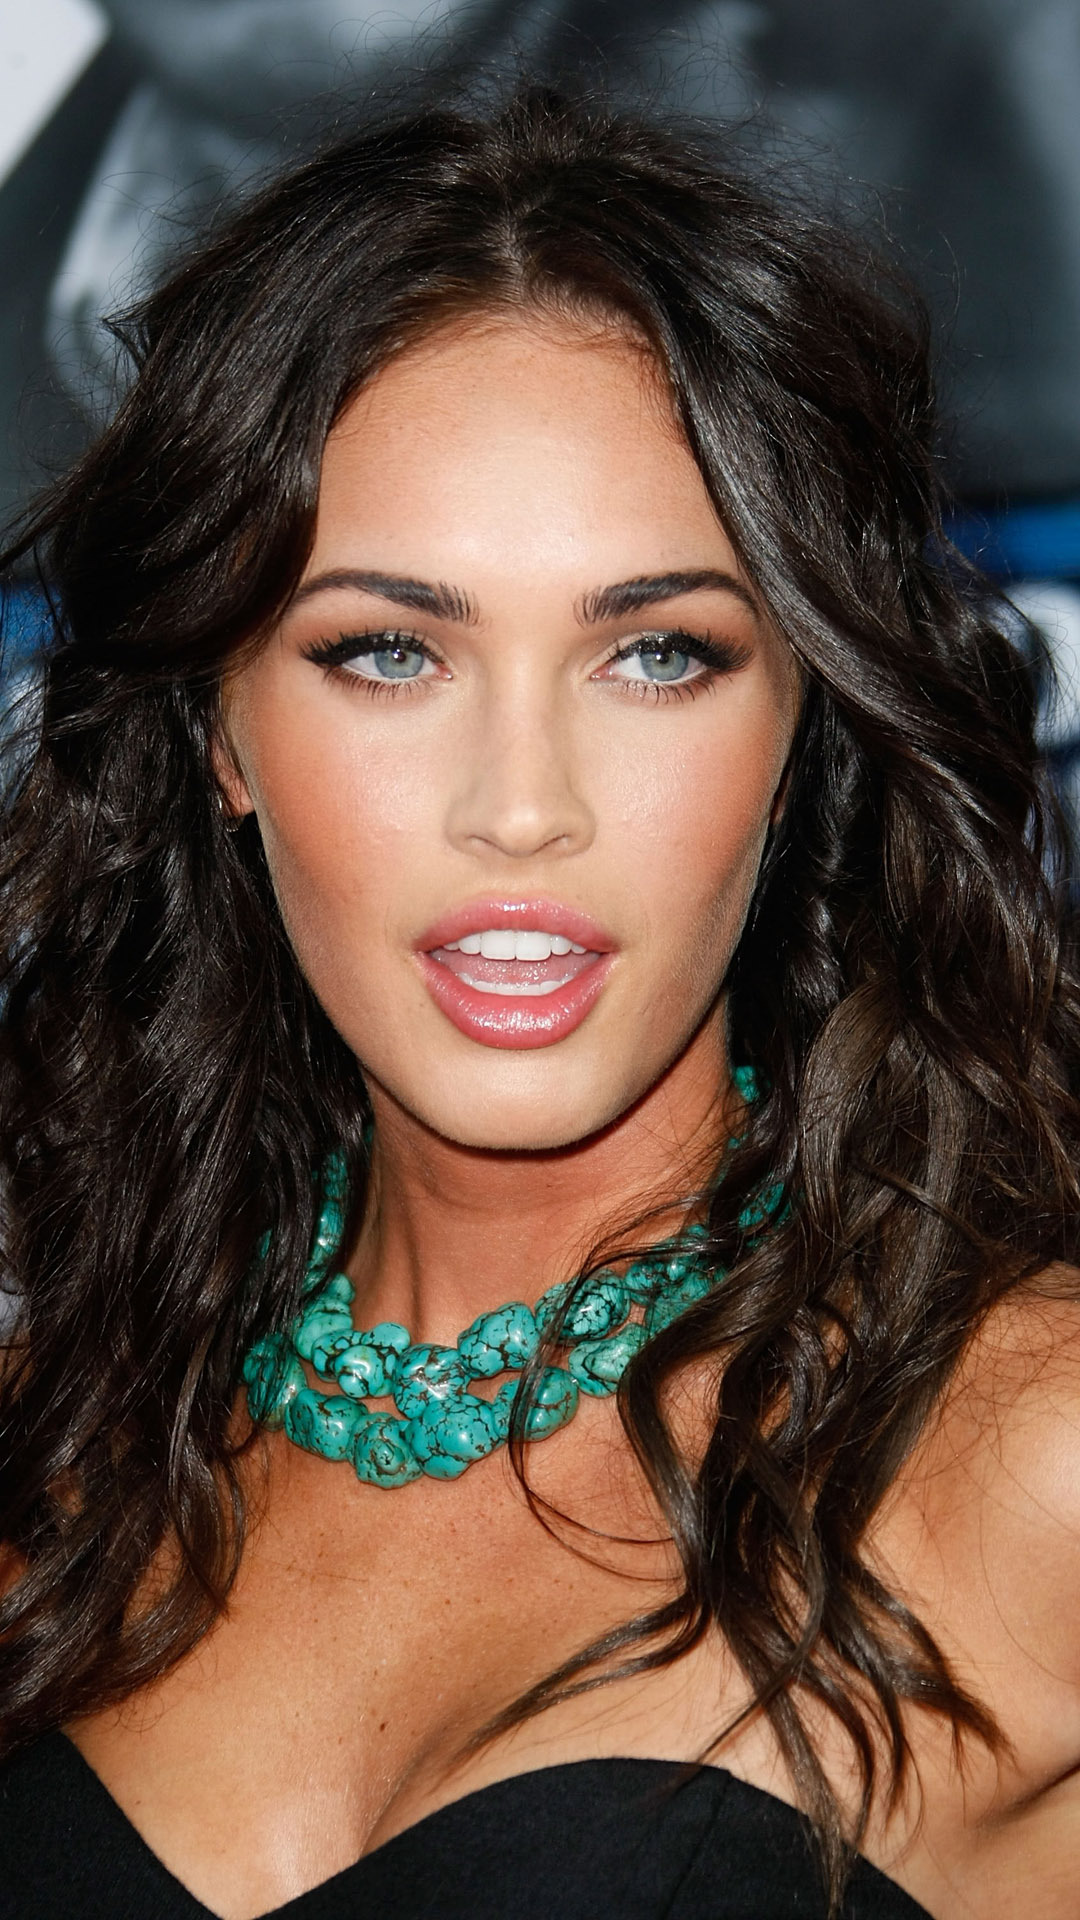 Fashion Megan Fox Best Htc One Wallpapers Free And Easy